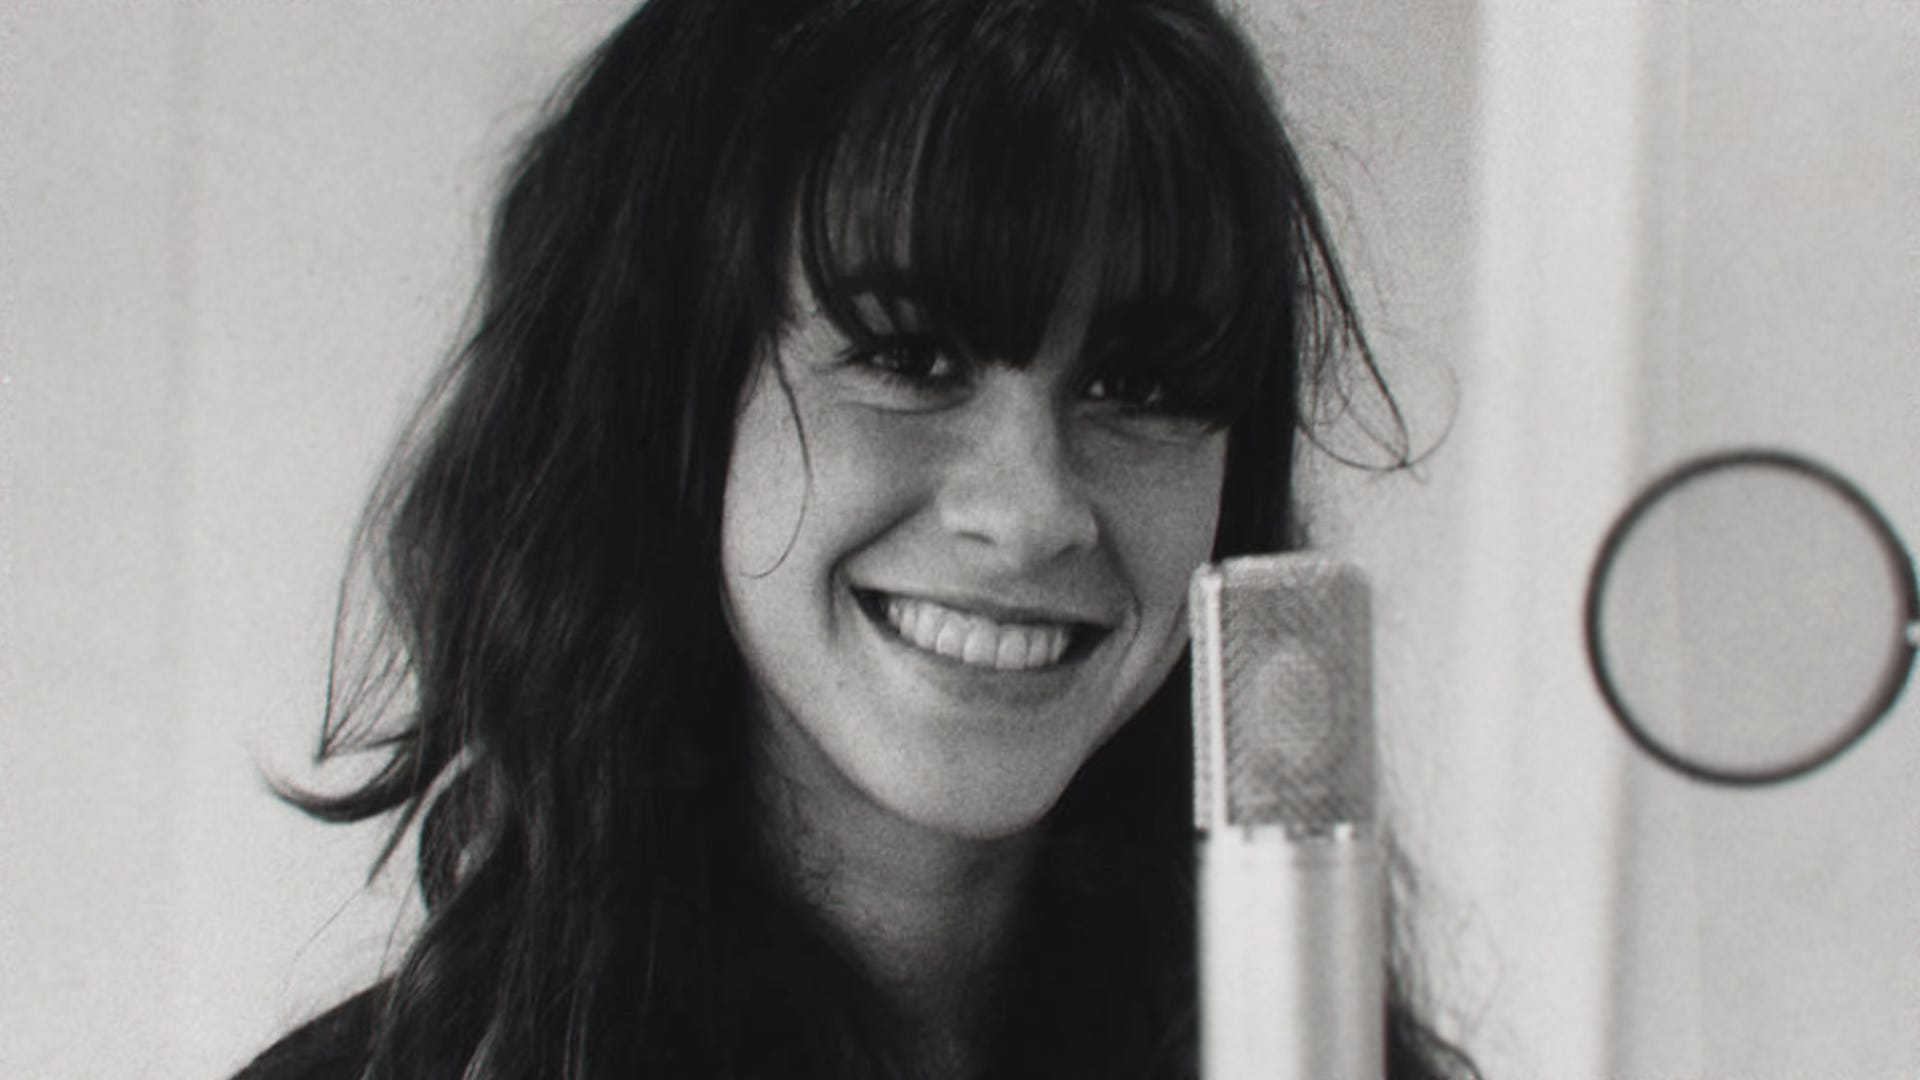 This was not the story I agreed to tell : Alanis Morissette blasts new documentary  Jagged